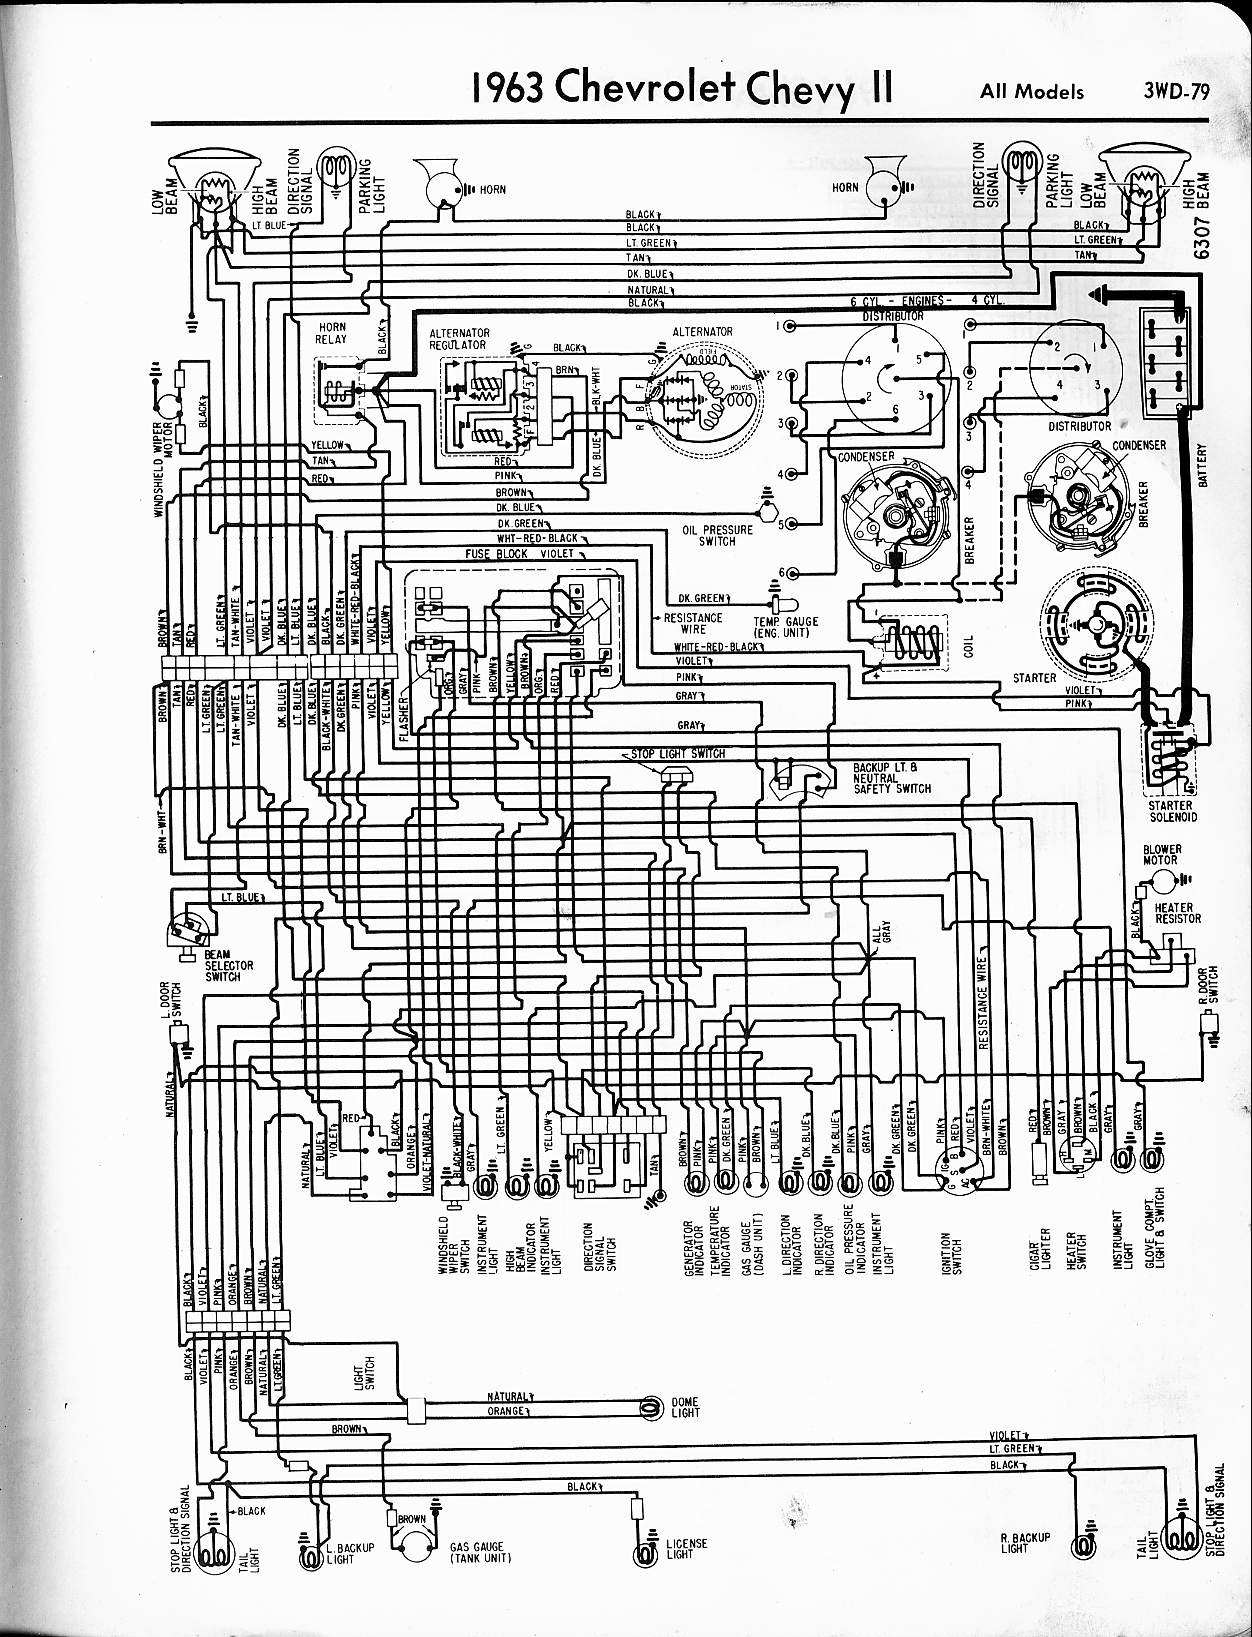 MWireChev63_3WD 079 1963 corvette wiring diagram 1963 corvette oil filter \u2022 wiring 1978 GMC Sierra at gsmportal.co